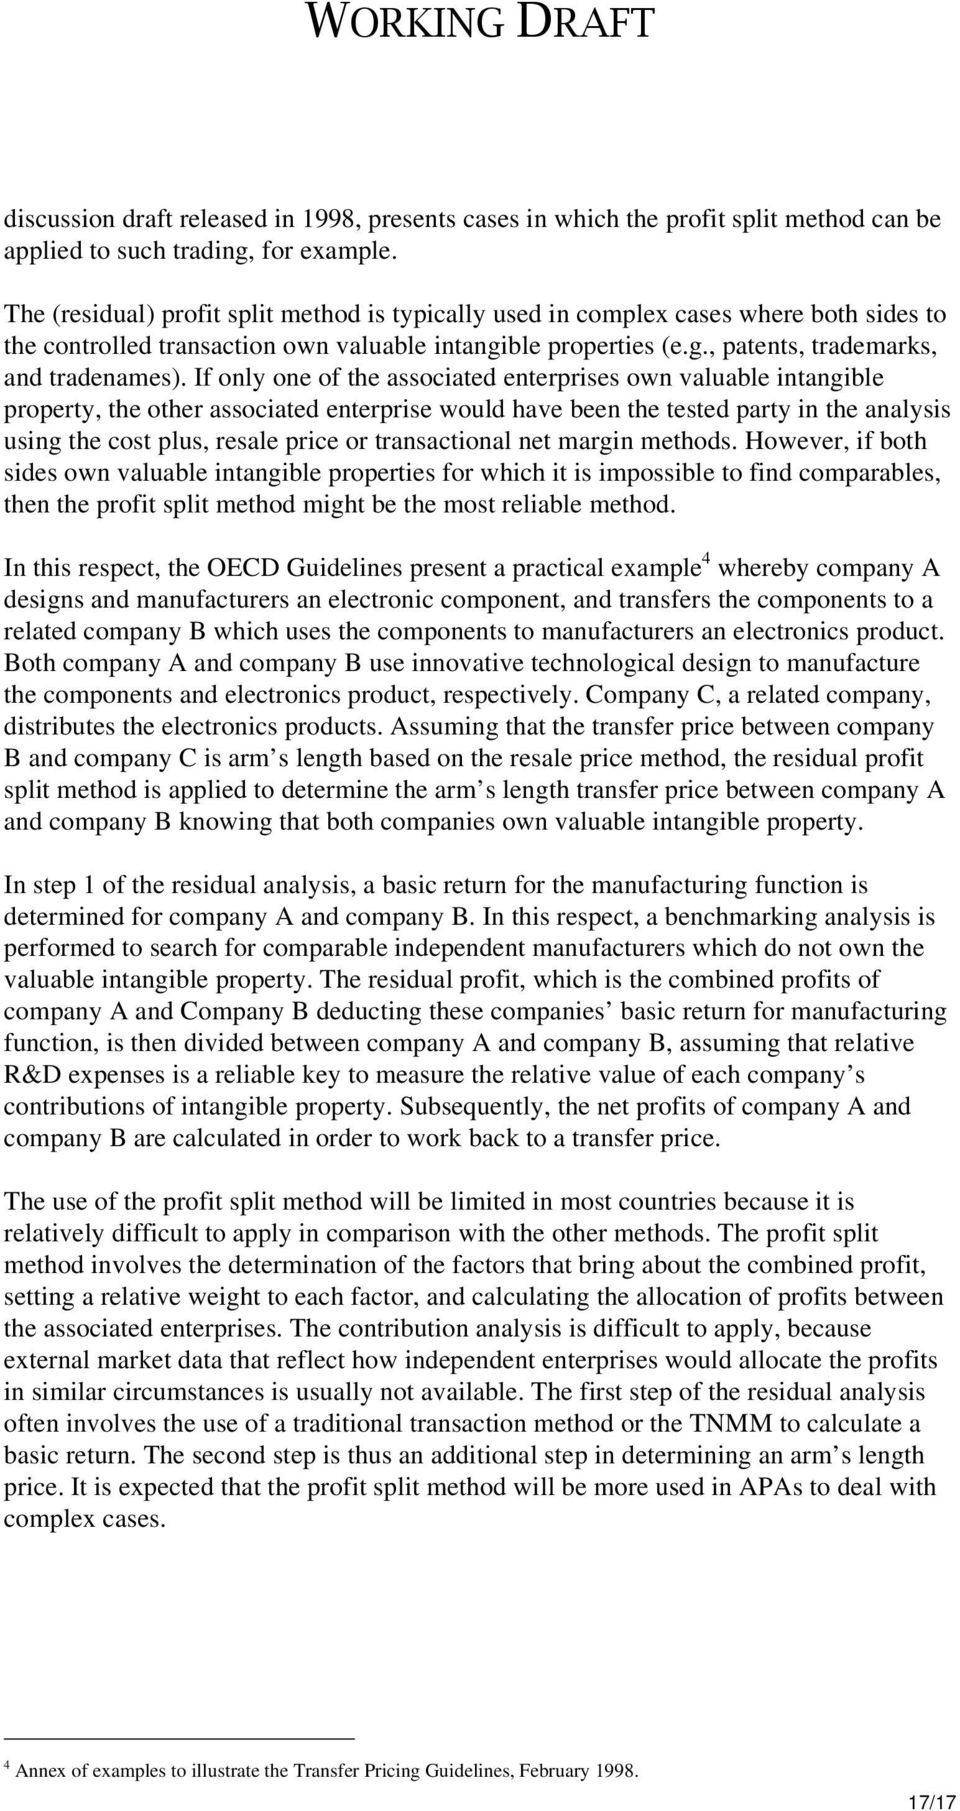 If only one of the associated enterprises own valuable intangible property, the other associated enterprise would have been the tested party in the analysis using the cost plus, resale price or